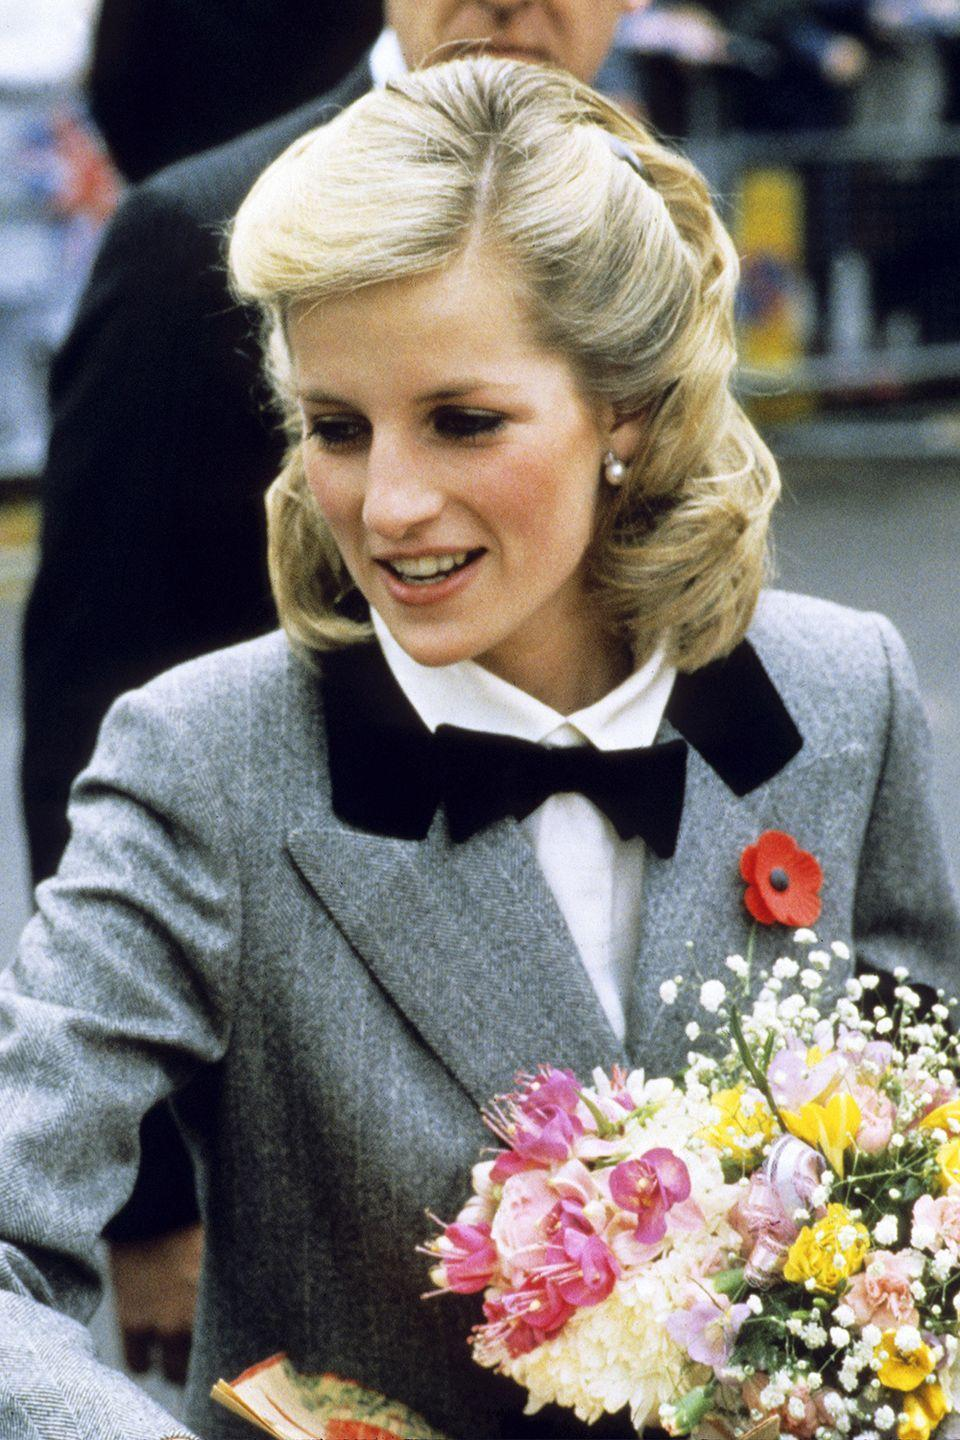 <p>The Princess pinned back her growing locks with two barrettes while at a charity event in London. </p>